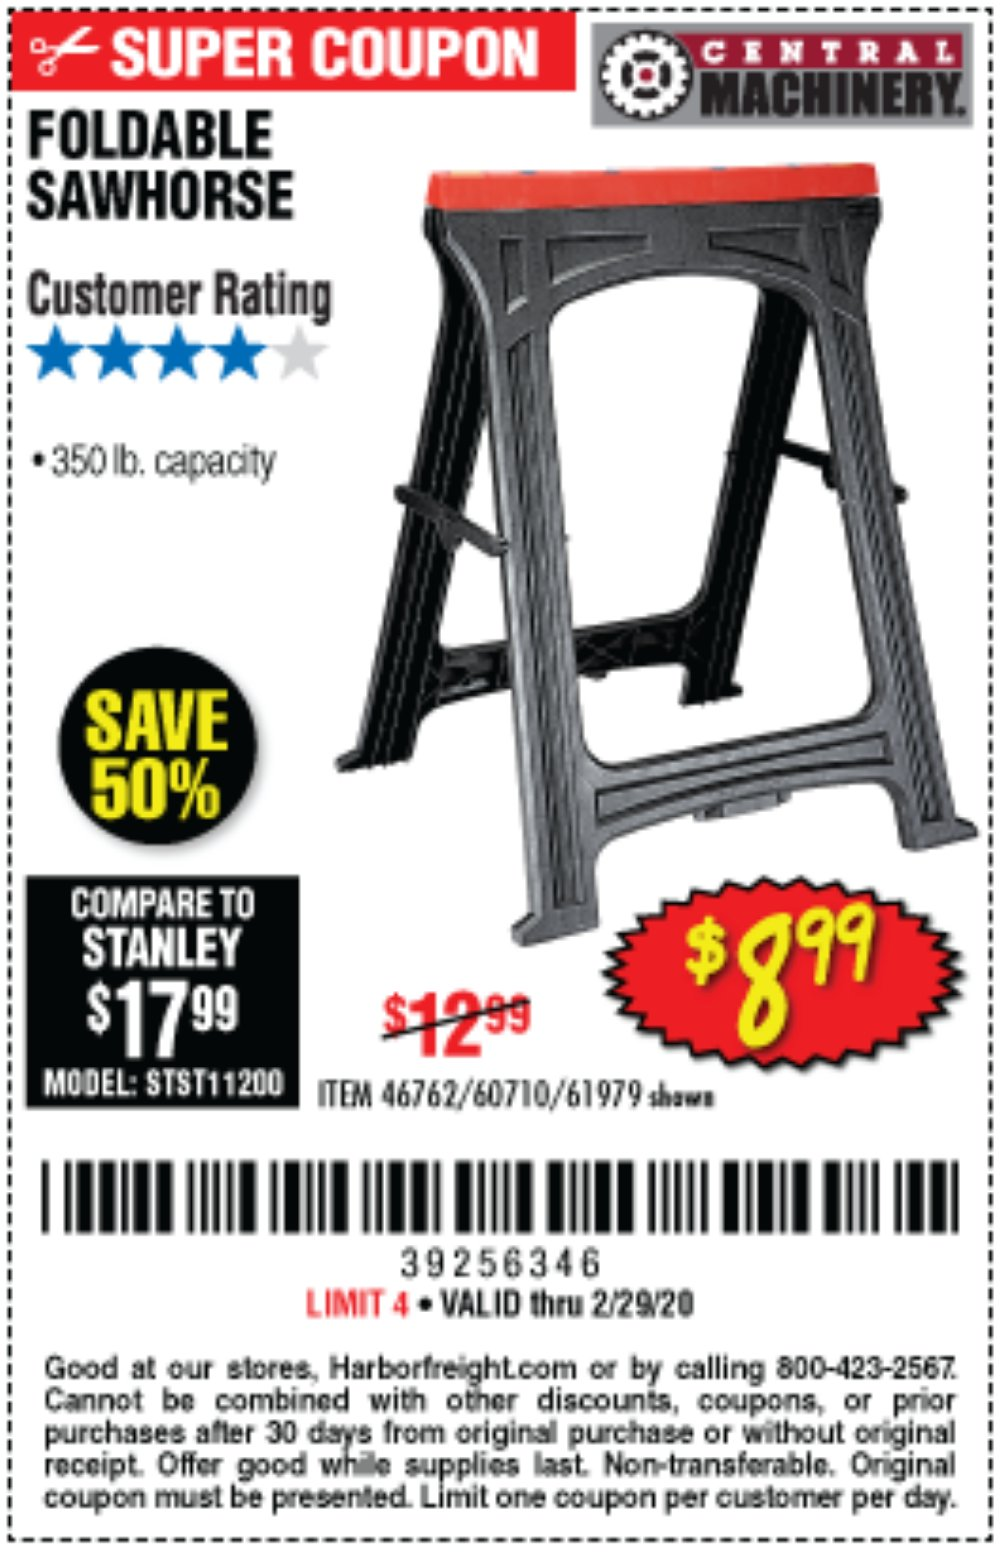 Harbor Freight Coupon, HF Coupons - 350 Lb. Capacity Folding Sawhorse